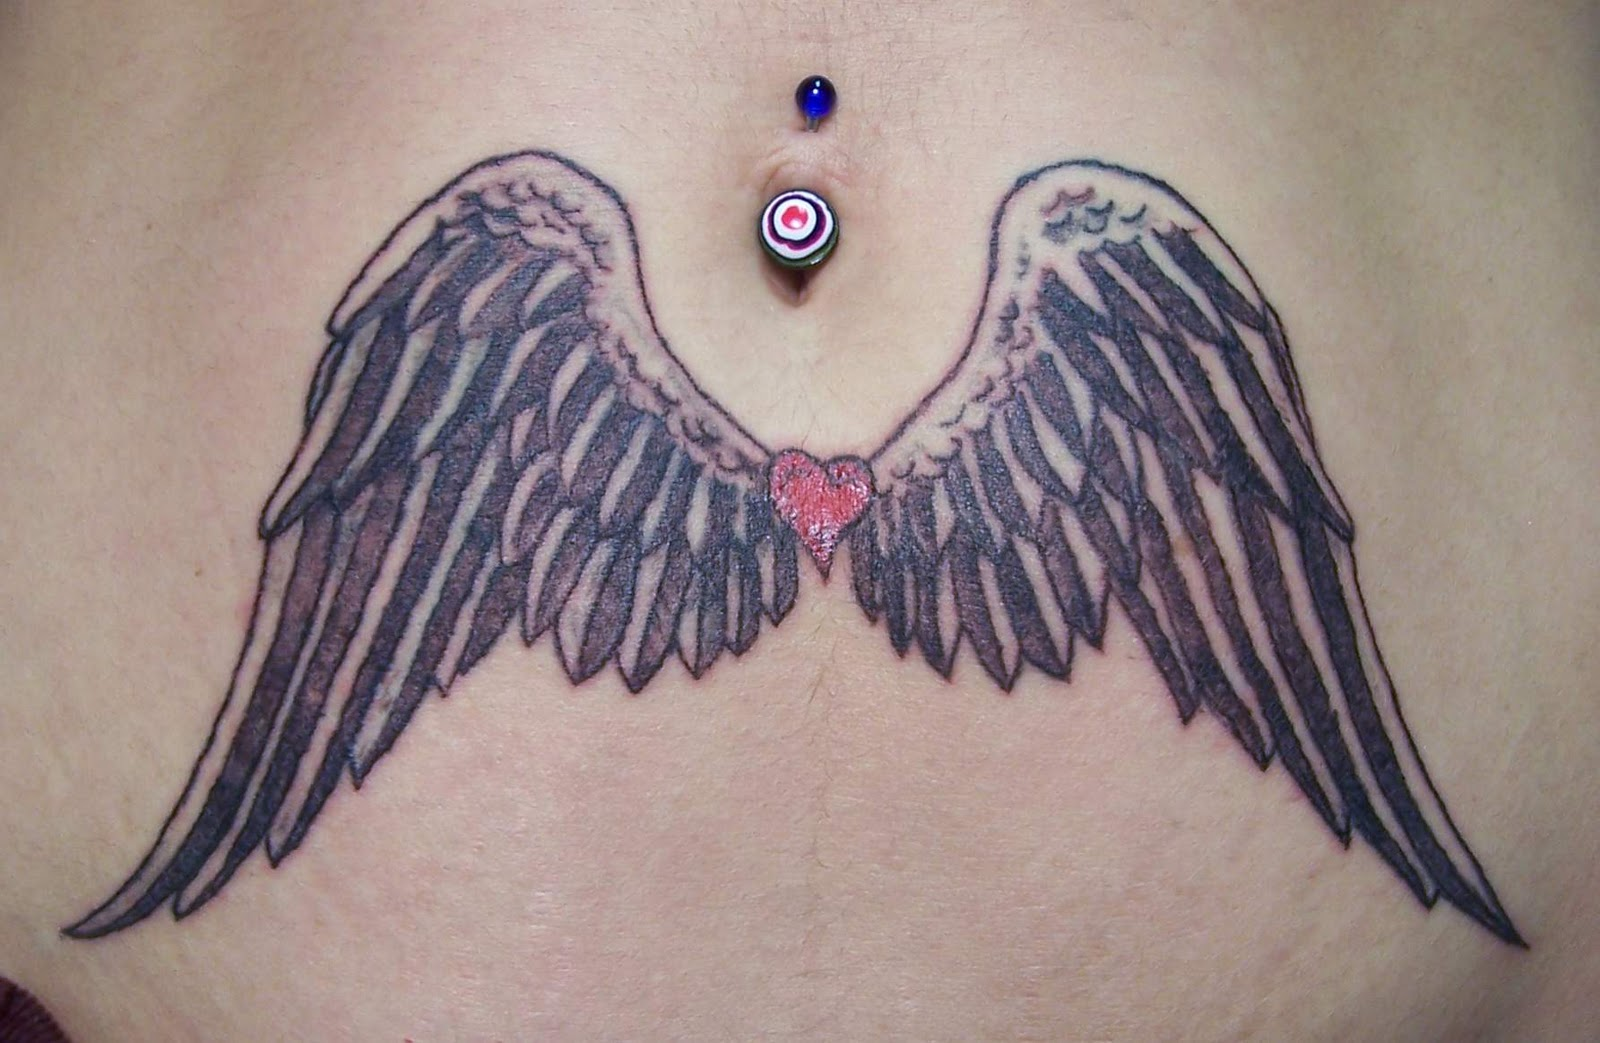 Tattoo today 39 s angel wings tattoo designs for girls for Angel wings girl tattoos